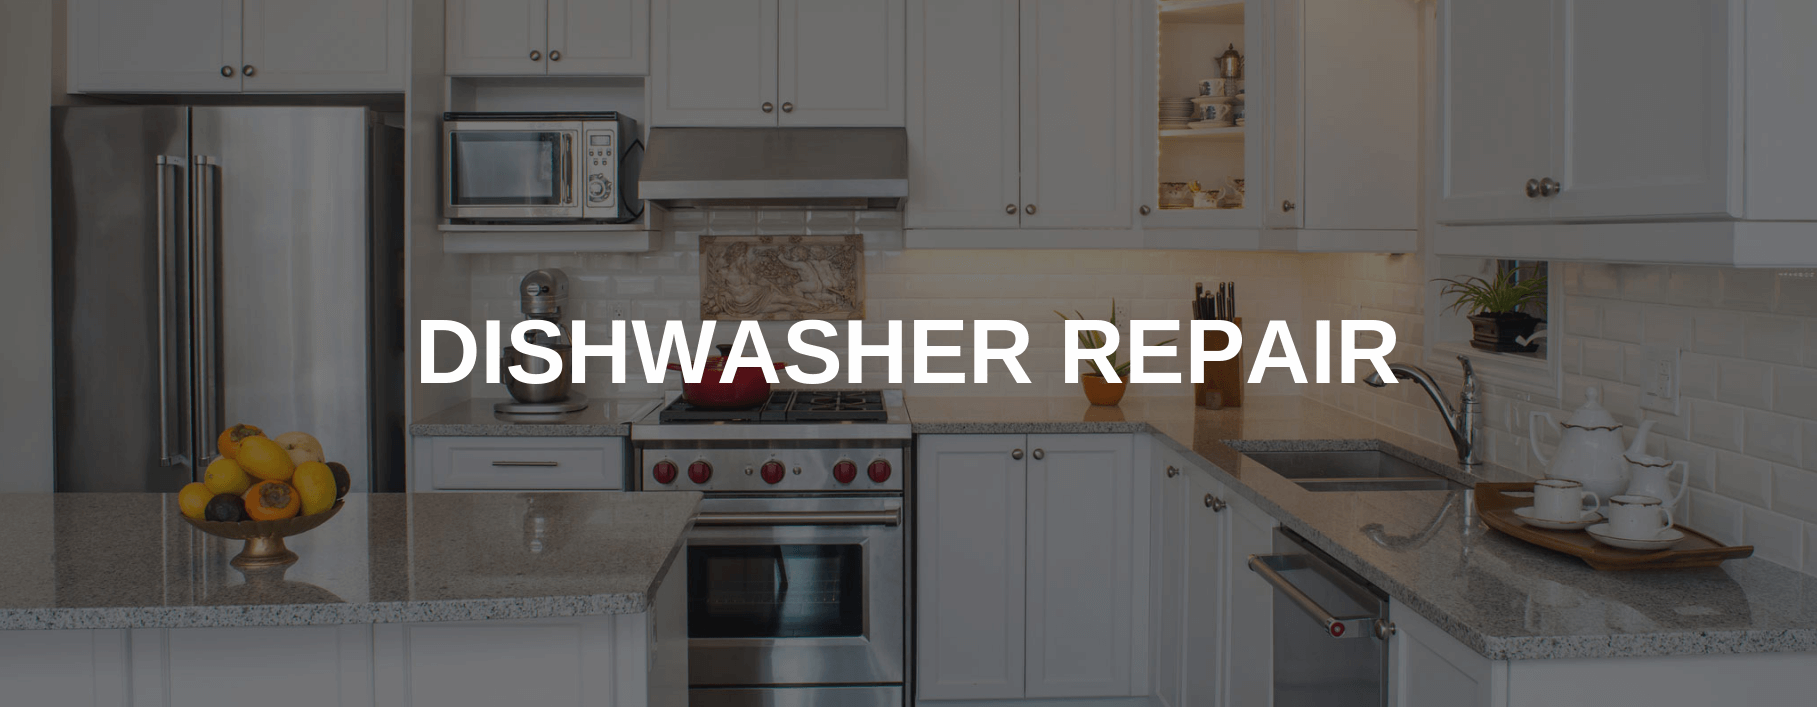 dishwasher repair north las vegas